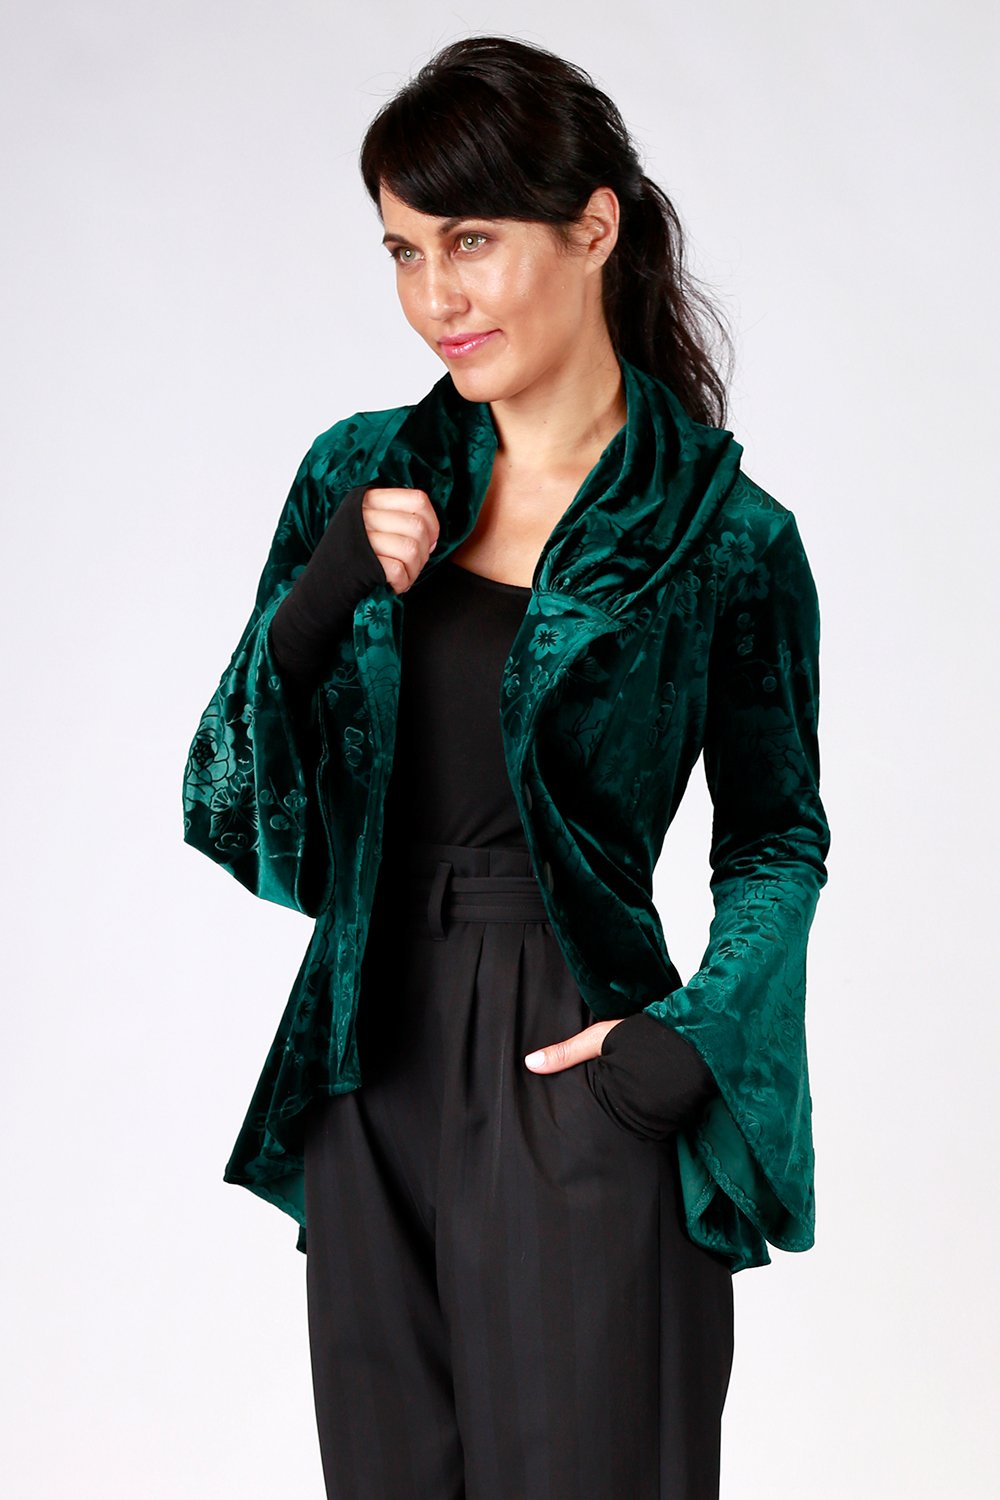 Ady Jacket | Annah Stretton AW20 | Gypsy Fare Collection | Velvet Jacket Coat | Shot on Model | Green Jacket